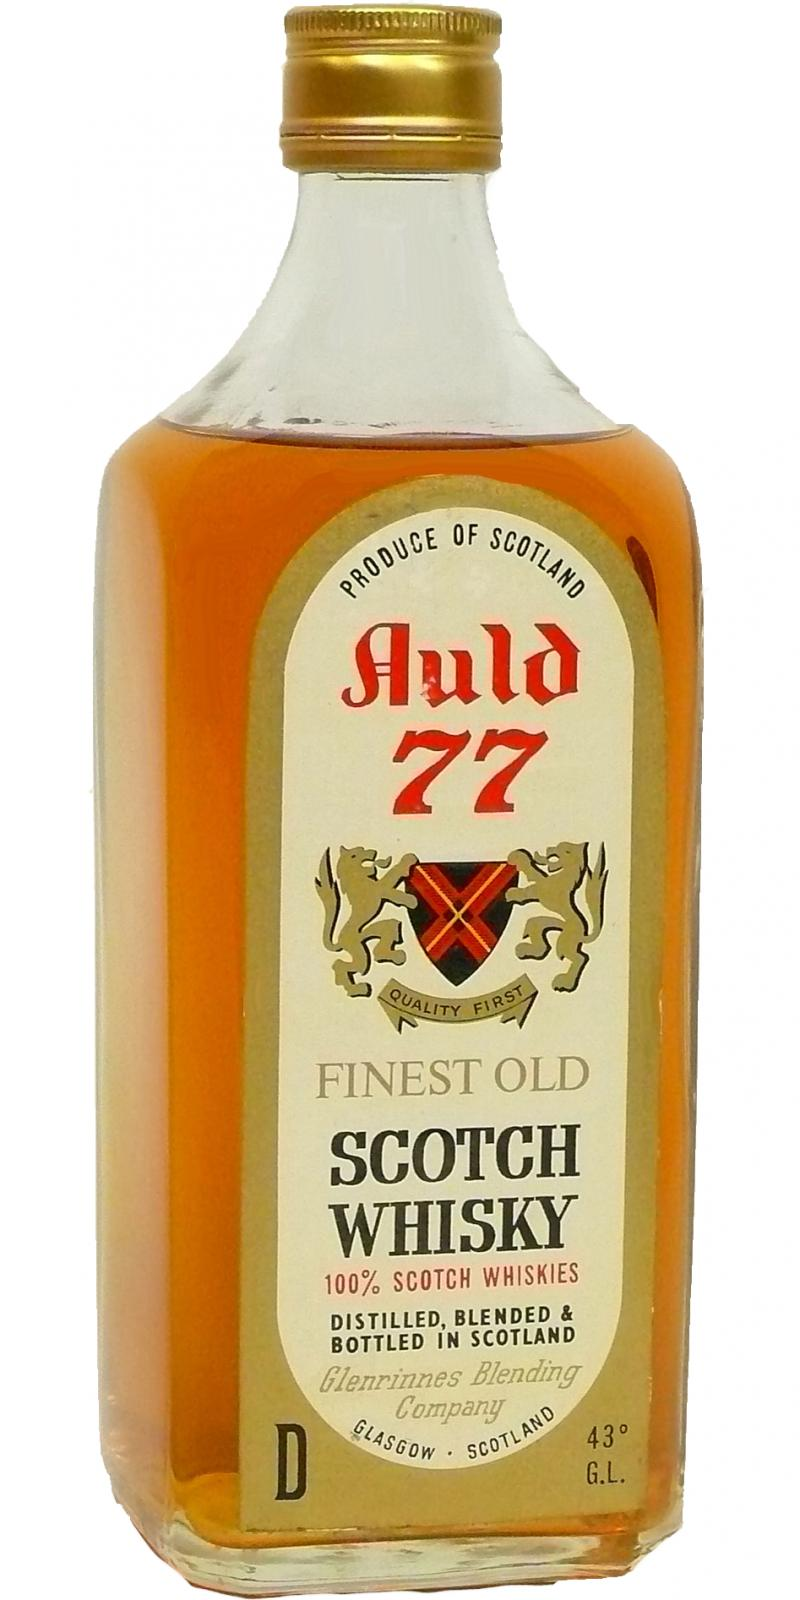 Auld 77 Finest Old Scotch Whisky